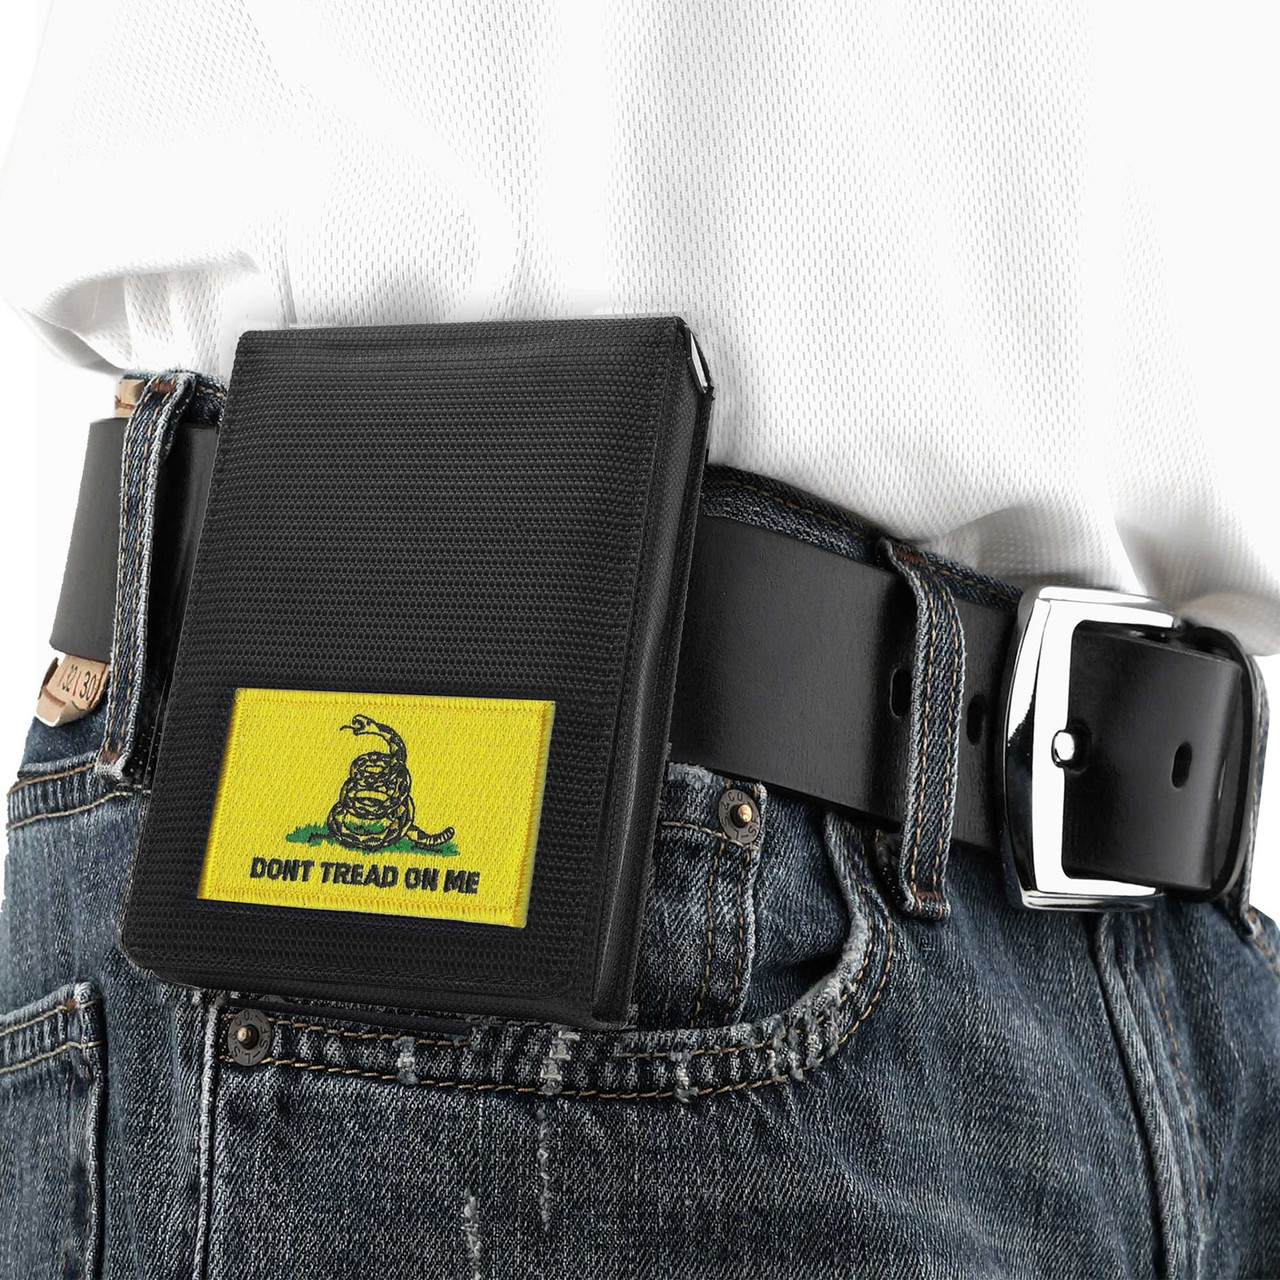 Ruger Security 9 Don't Tread on Me Holster